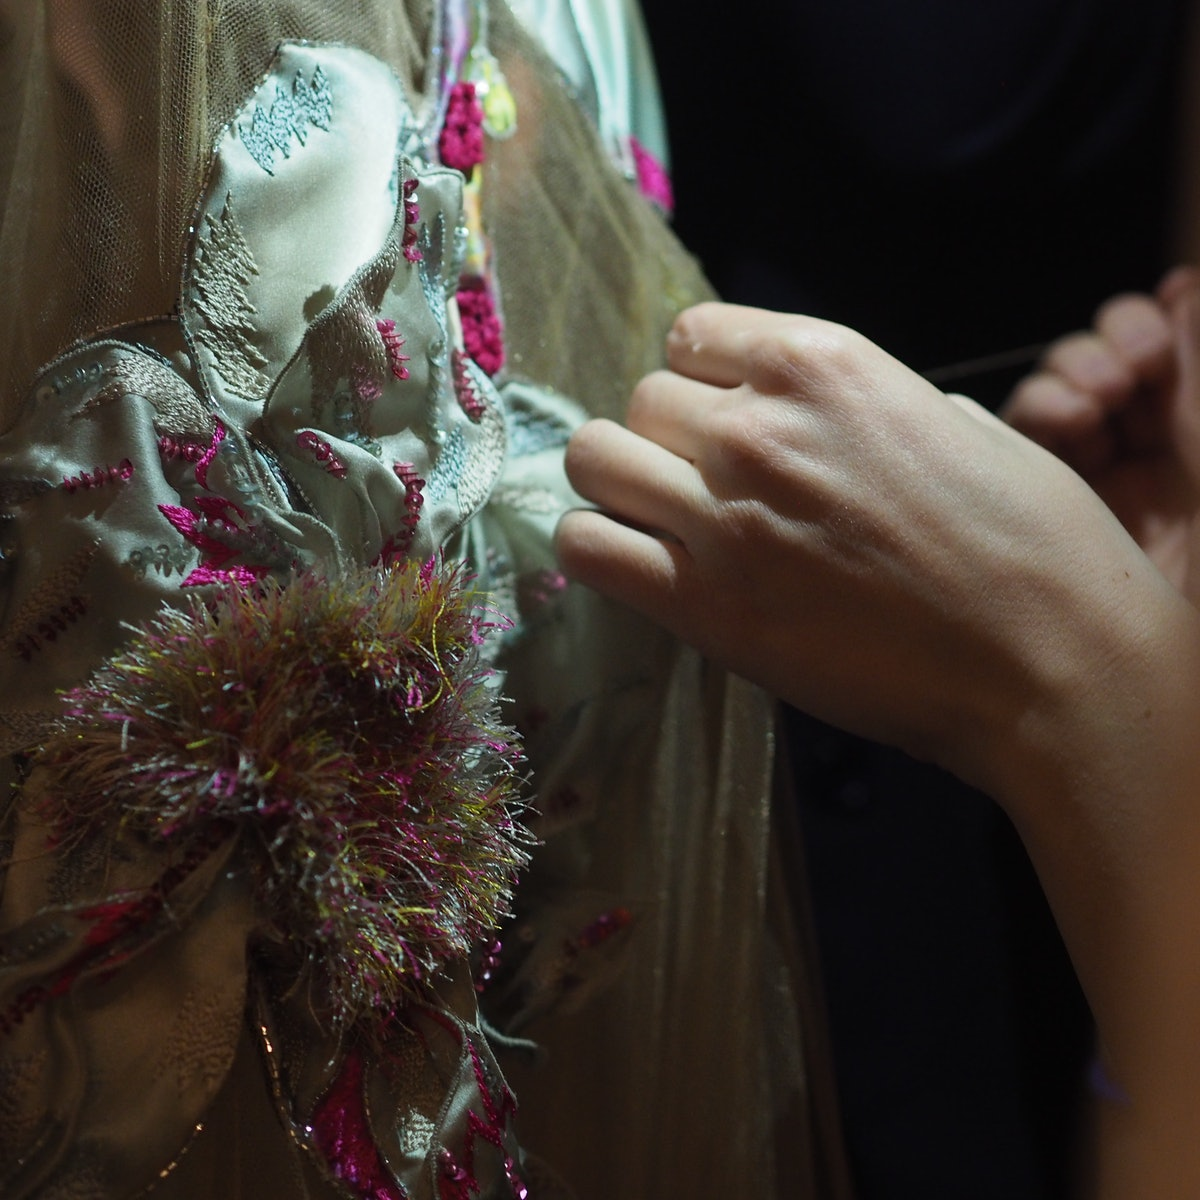 Backstage at the Spring 2015 couture shows